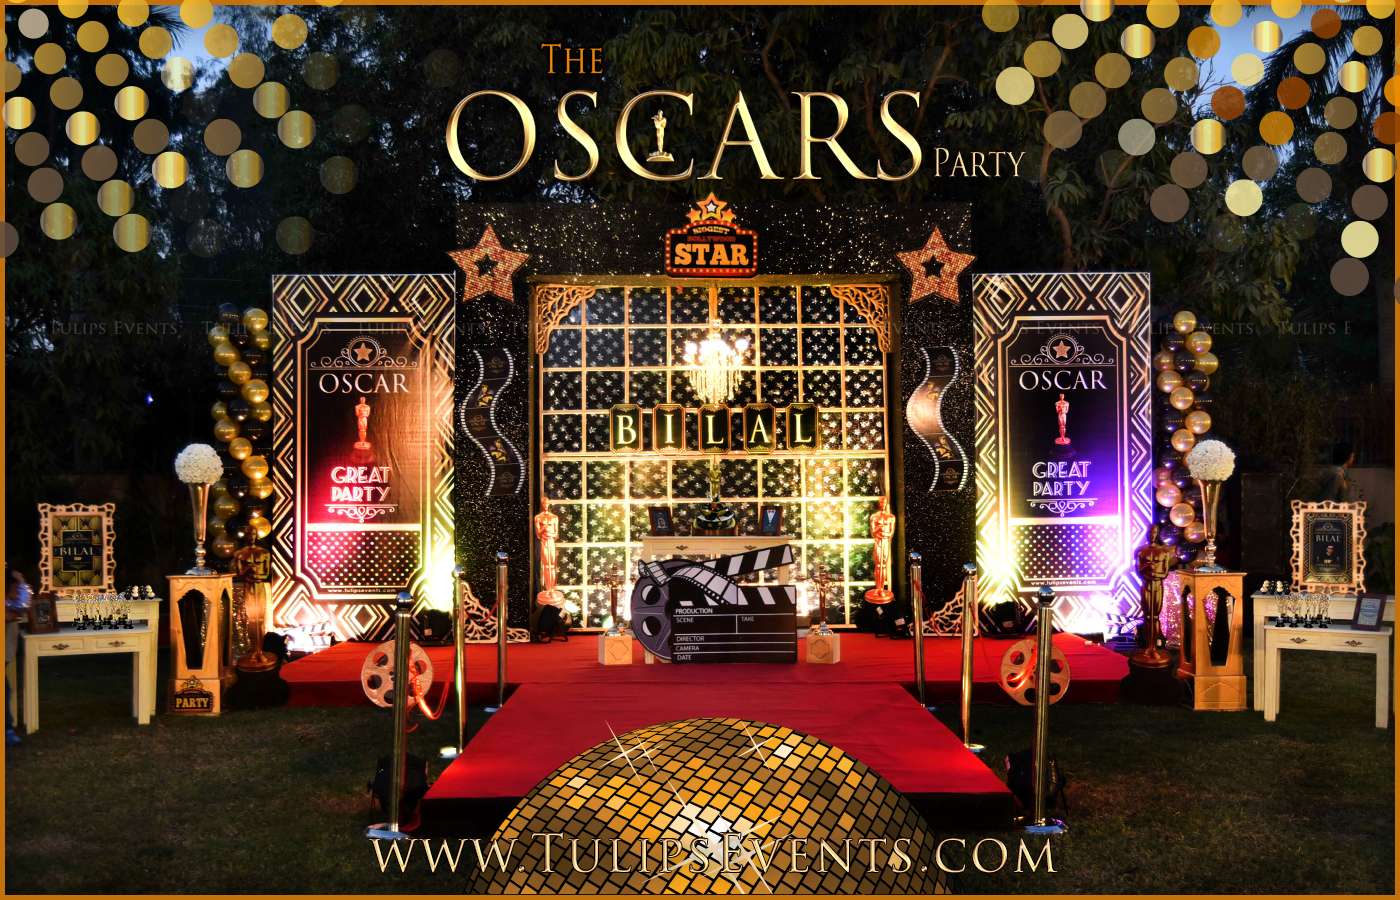 Great Awards Oscar Party Ideas By Tulips Events In Pakistan